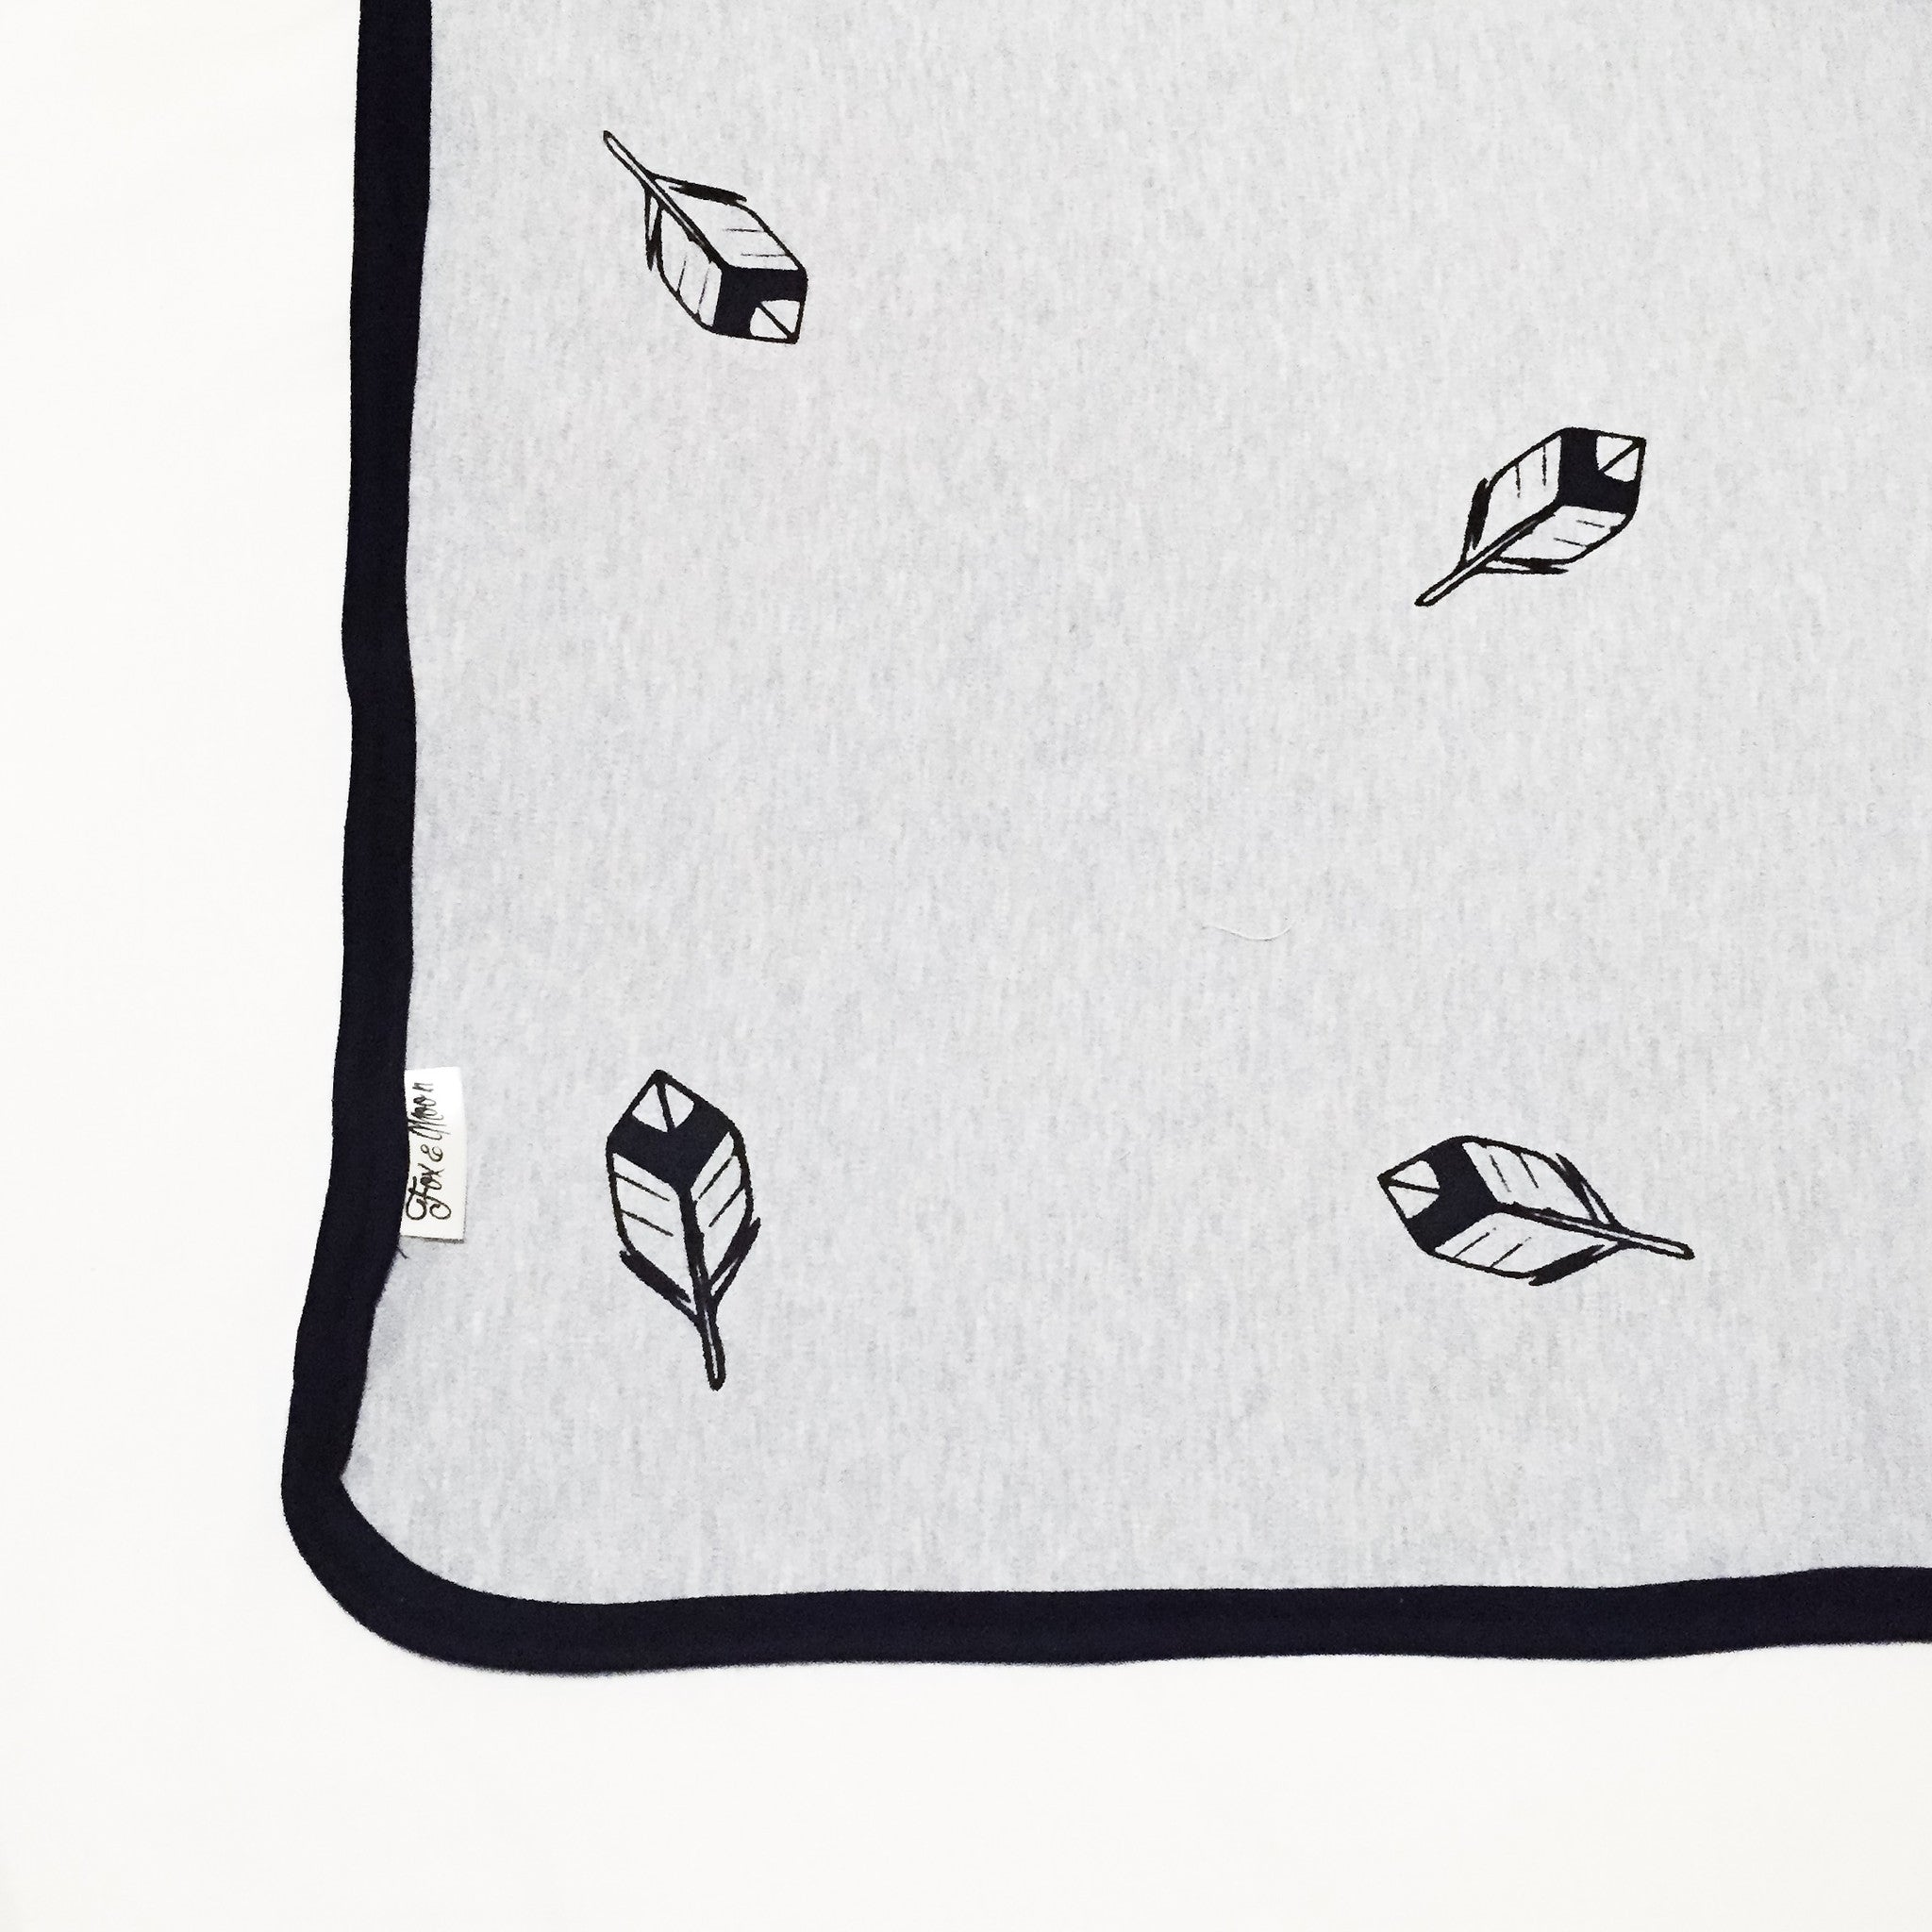 Cotton Knit Blanket - Grey with Feathers - Joba Collection